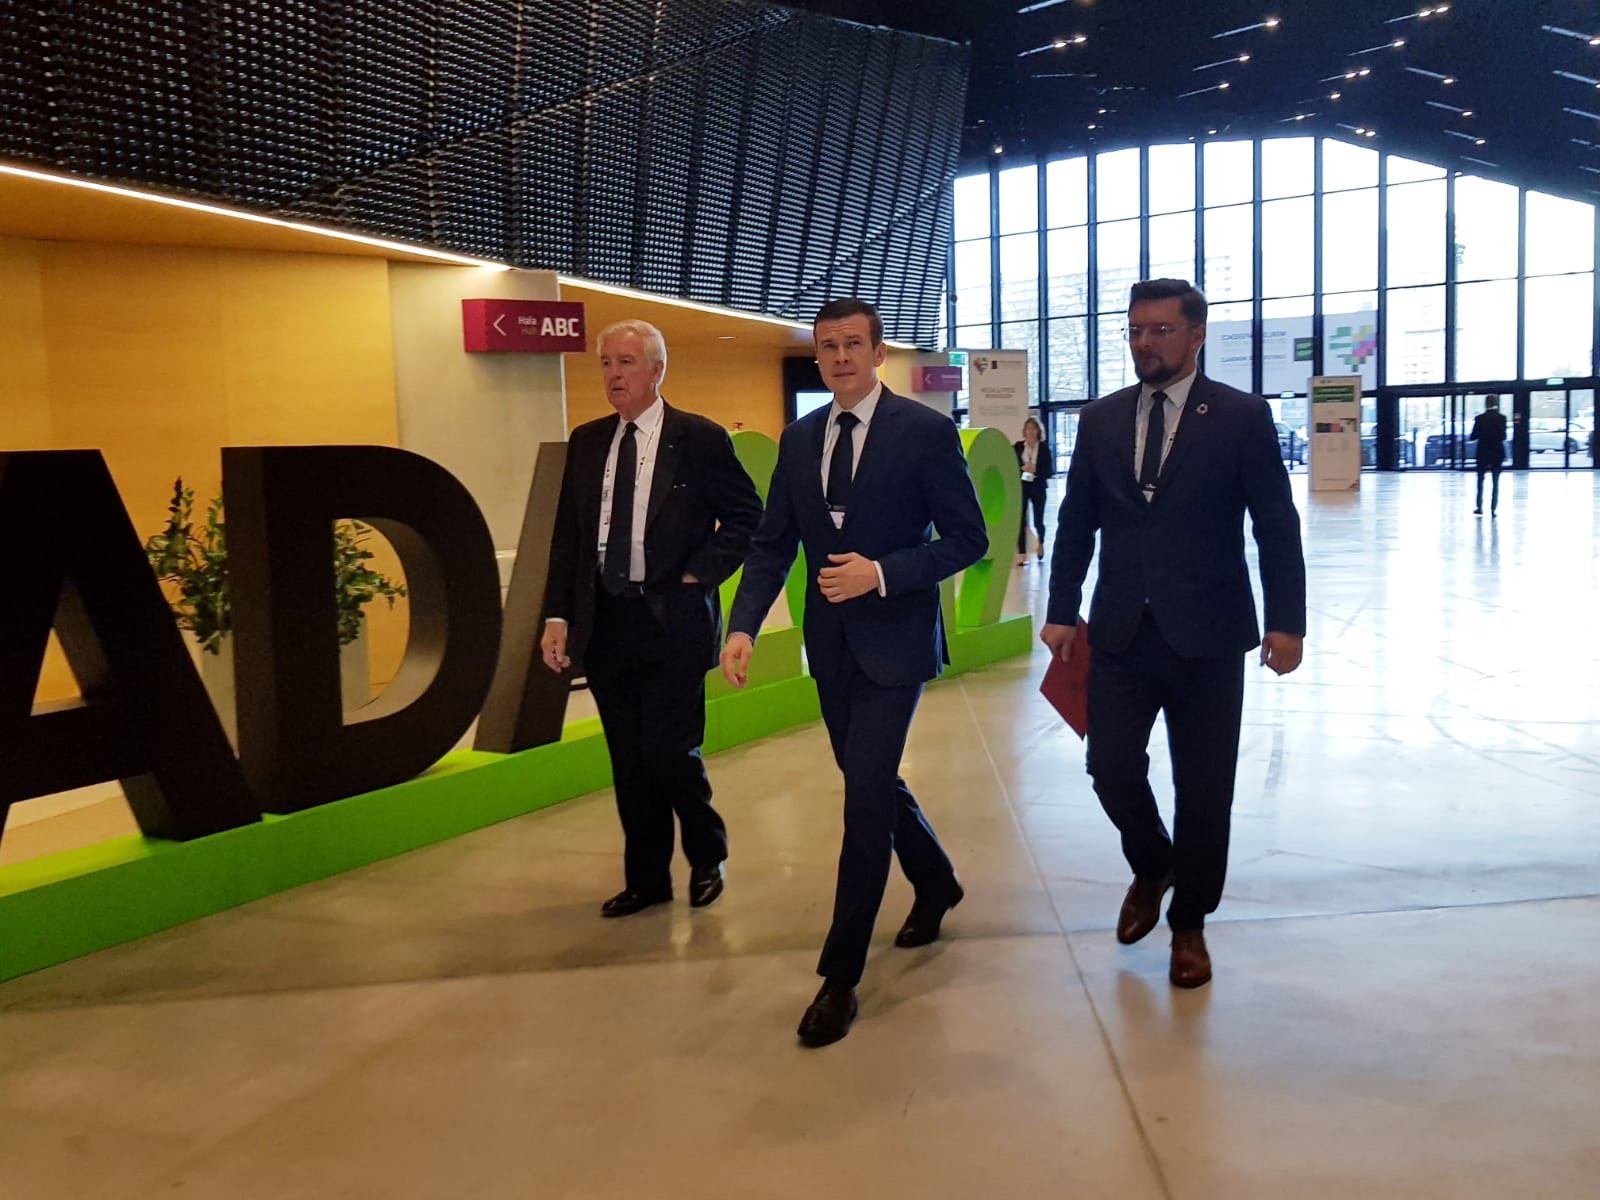 Sir Craig had arrived at the Conference accompanied by Poland's Sports Minister Witold Bańka - the man due to replace him as WADA President on January 1 ©Polish Ministry of Sport and Tourism